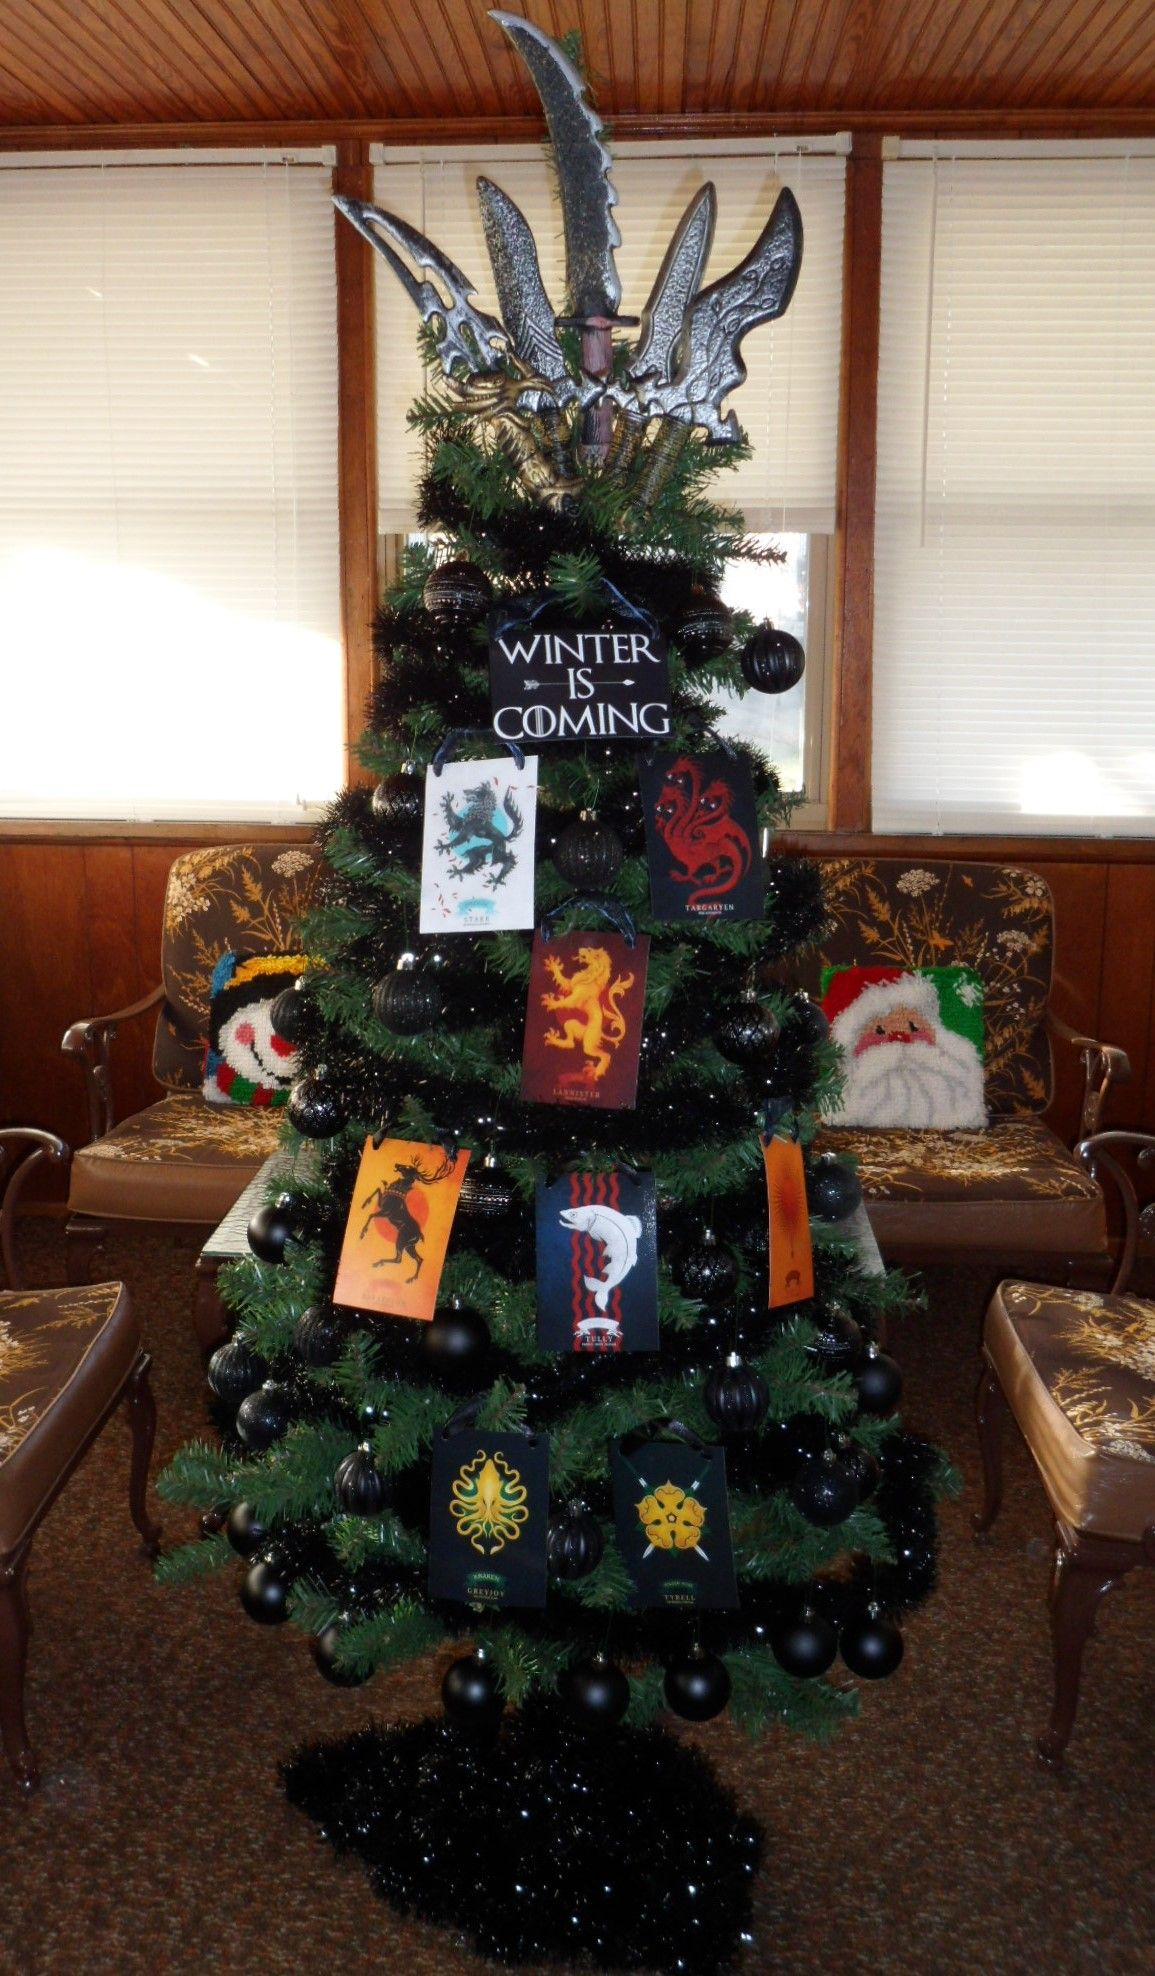 Pin By Jill Fielder On Theme Trees Game Of Thrones Christmas Christmas Tree Printable Christmas Games